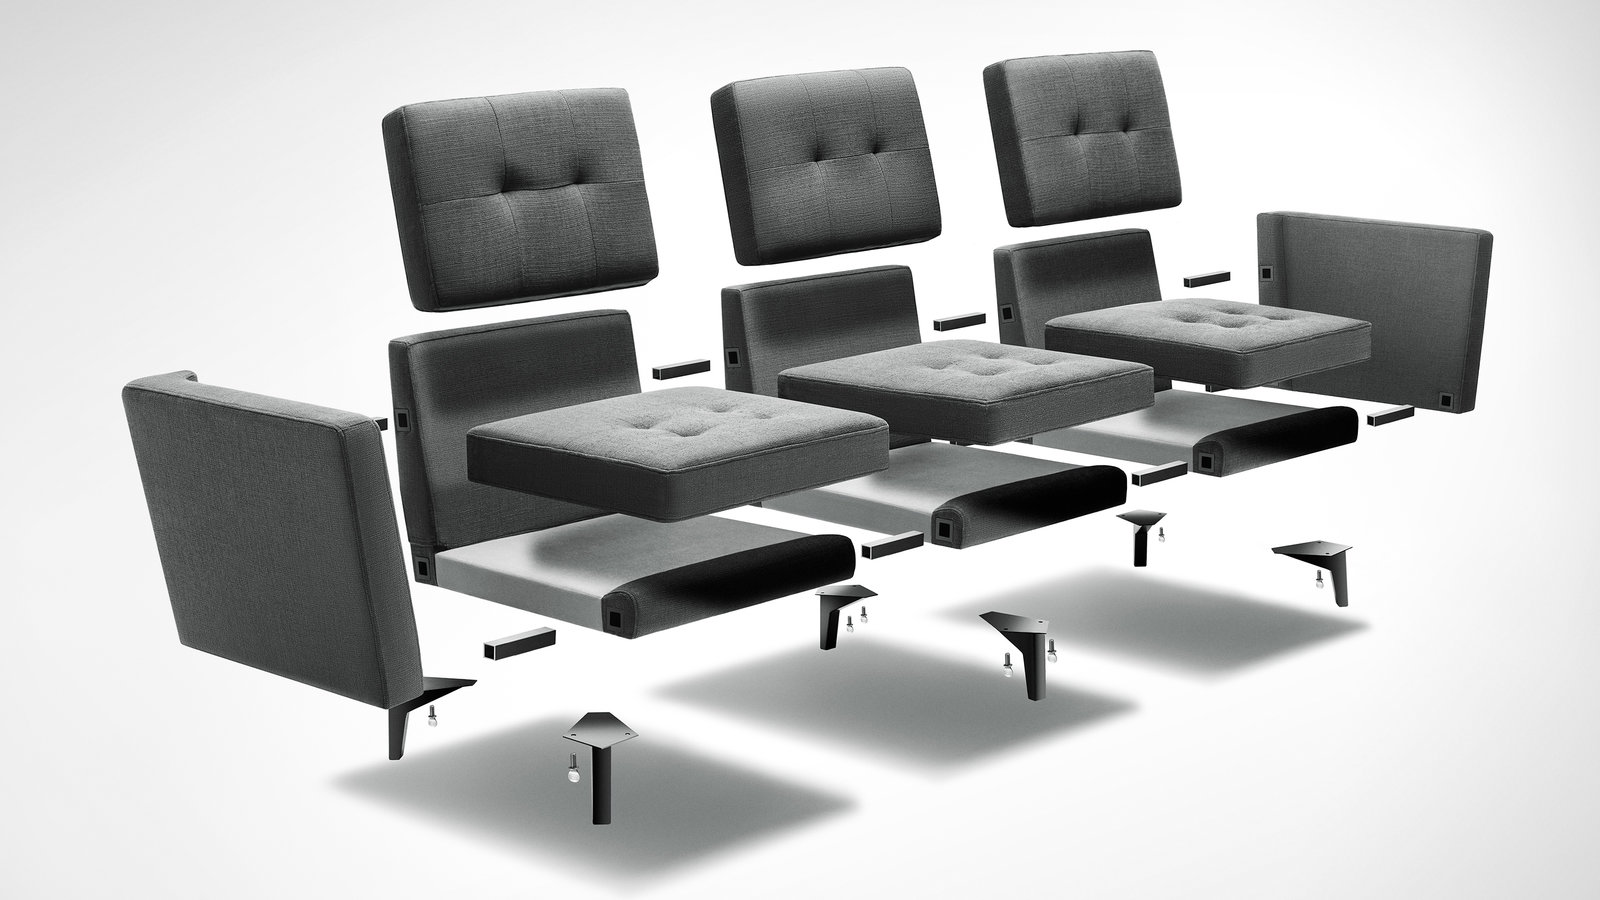 Sofa In A Box Companies How Furniture Makers Are Catering To Millennials